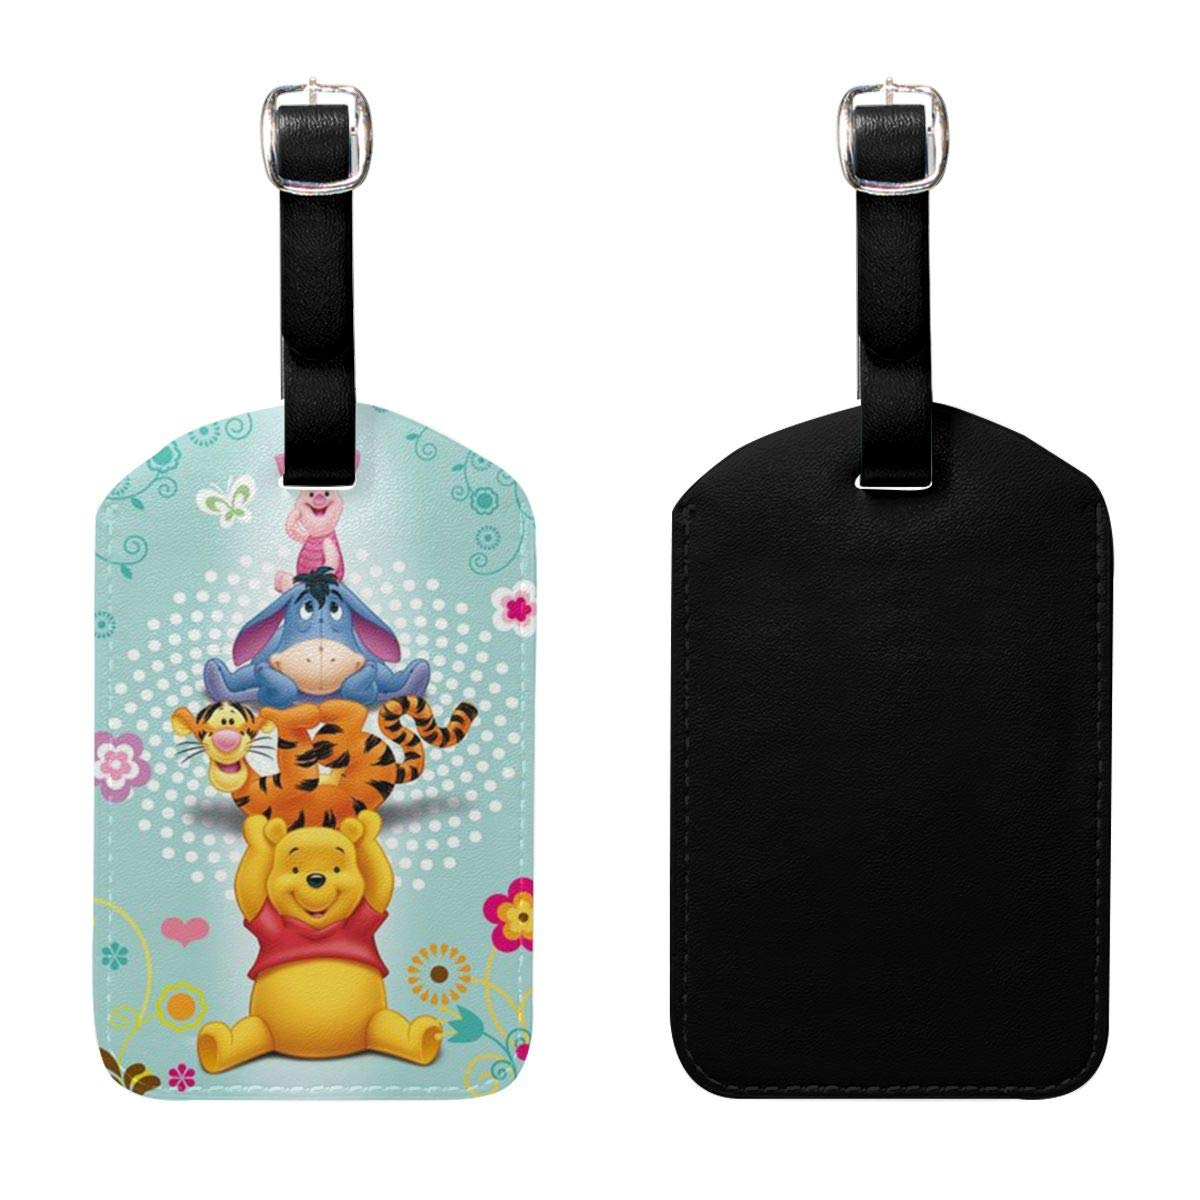 PU Leather Luggage Tags Winnie The Pooh Suitcase Labels Bag Adjustable Leather Strap Travel Accessories Set of 2